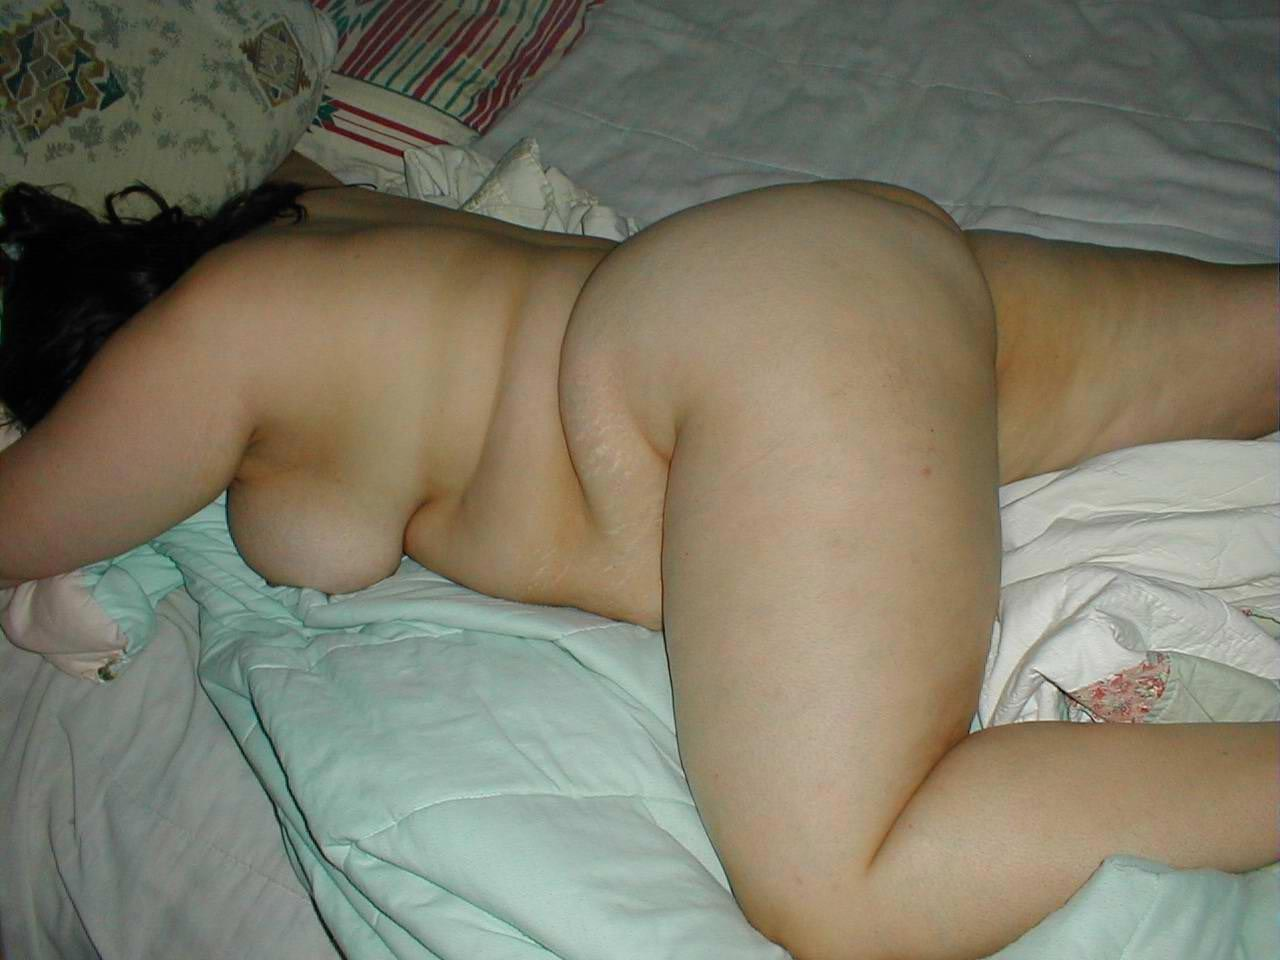 Good Chubby girlfriend sexting pics